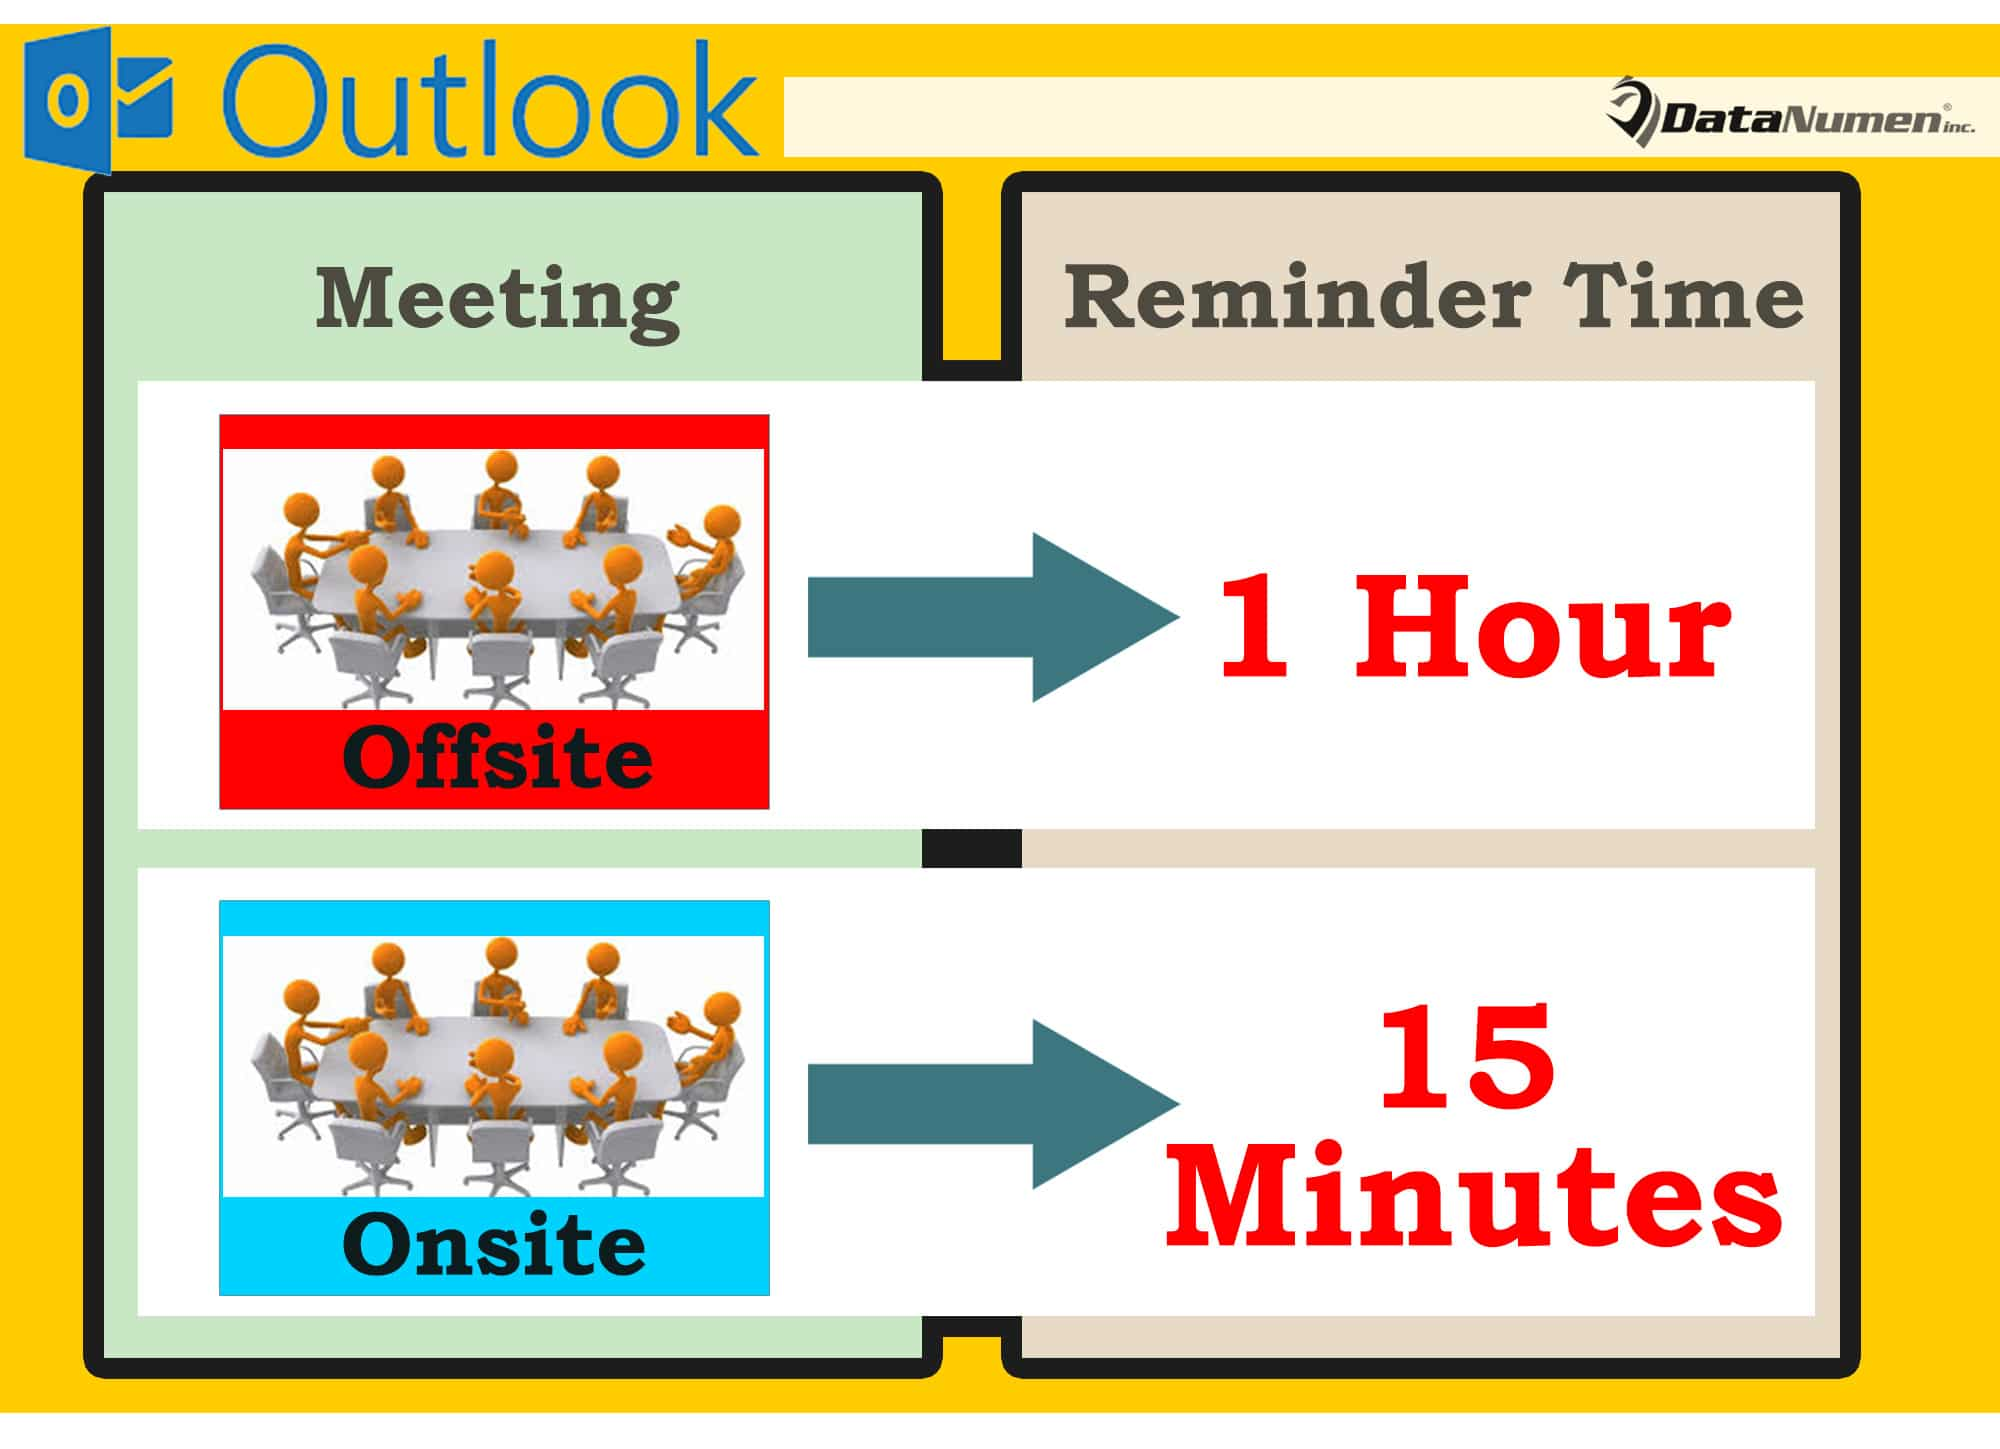 Auto Set Different Reminder Time for Outlook Meetings in Different Color Categories